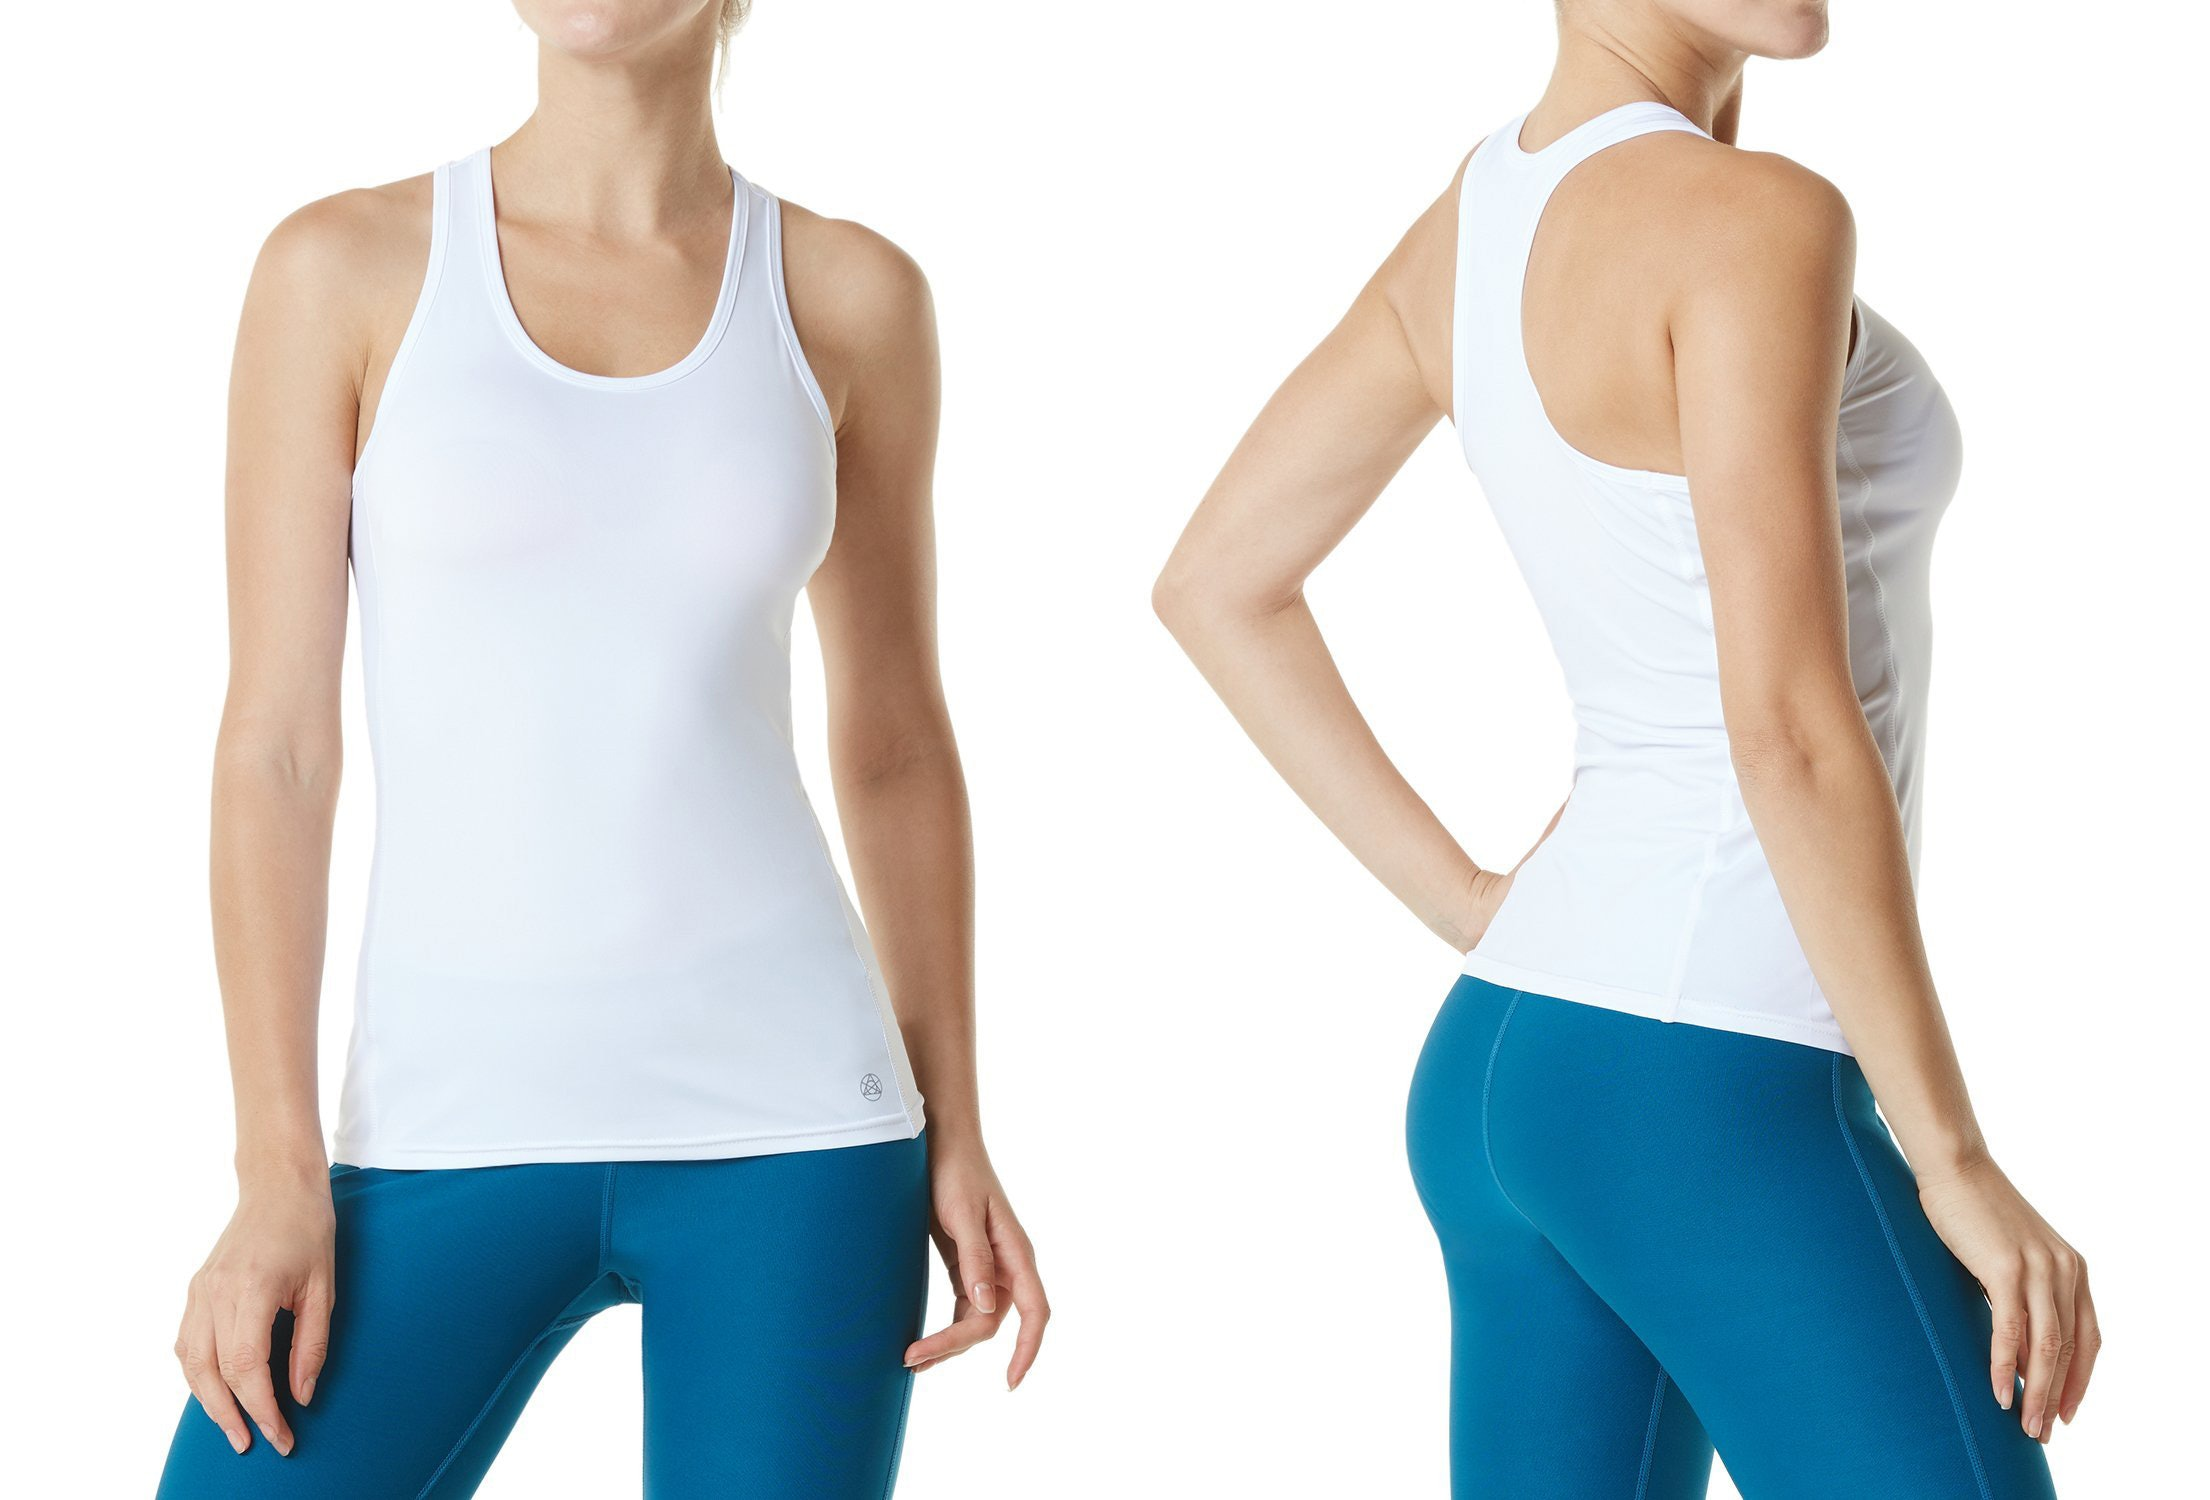 474730149ee8a The 5 Best Women s Workout Tanks